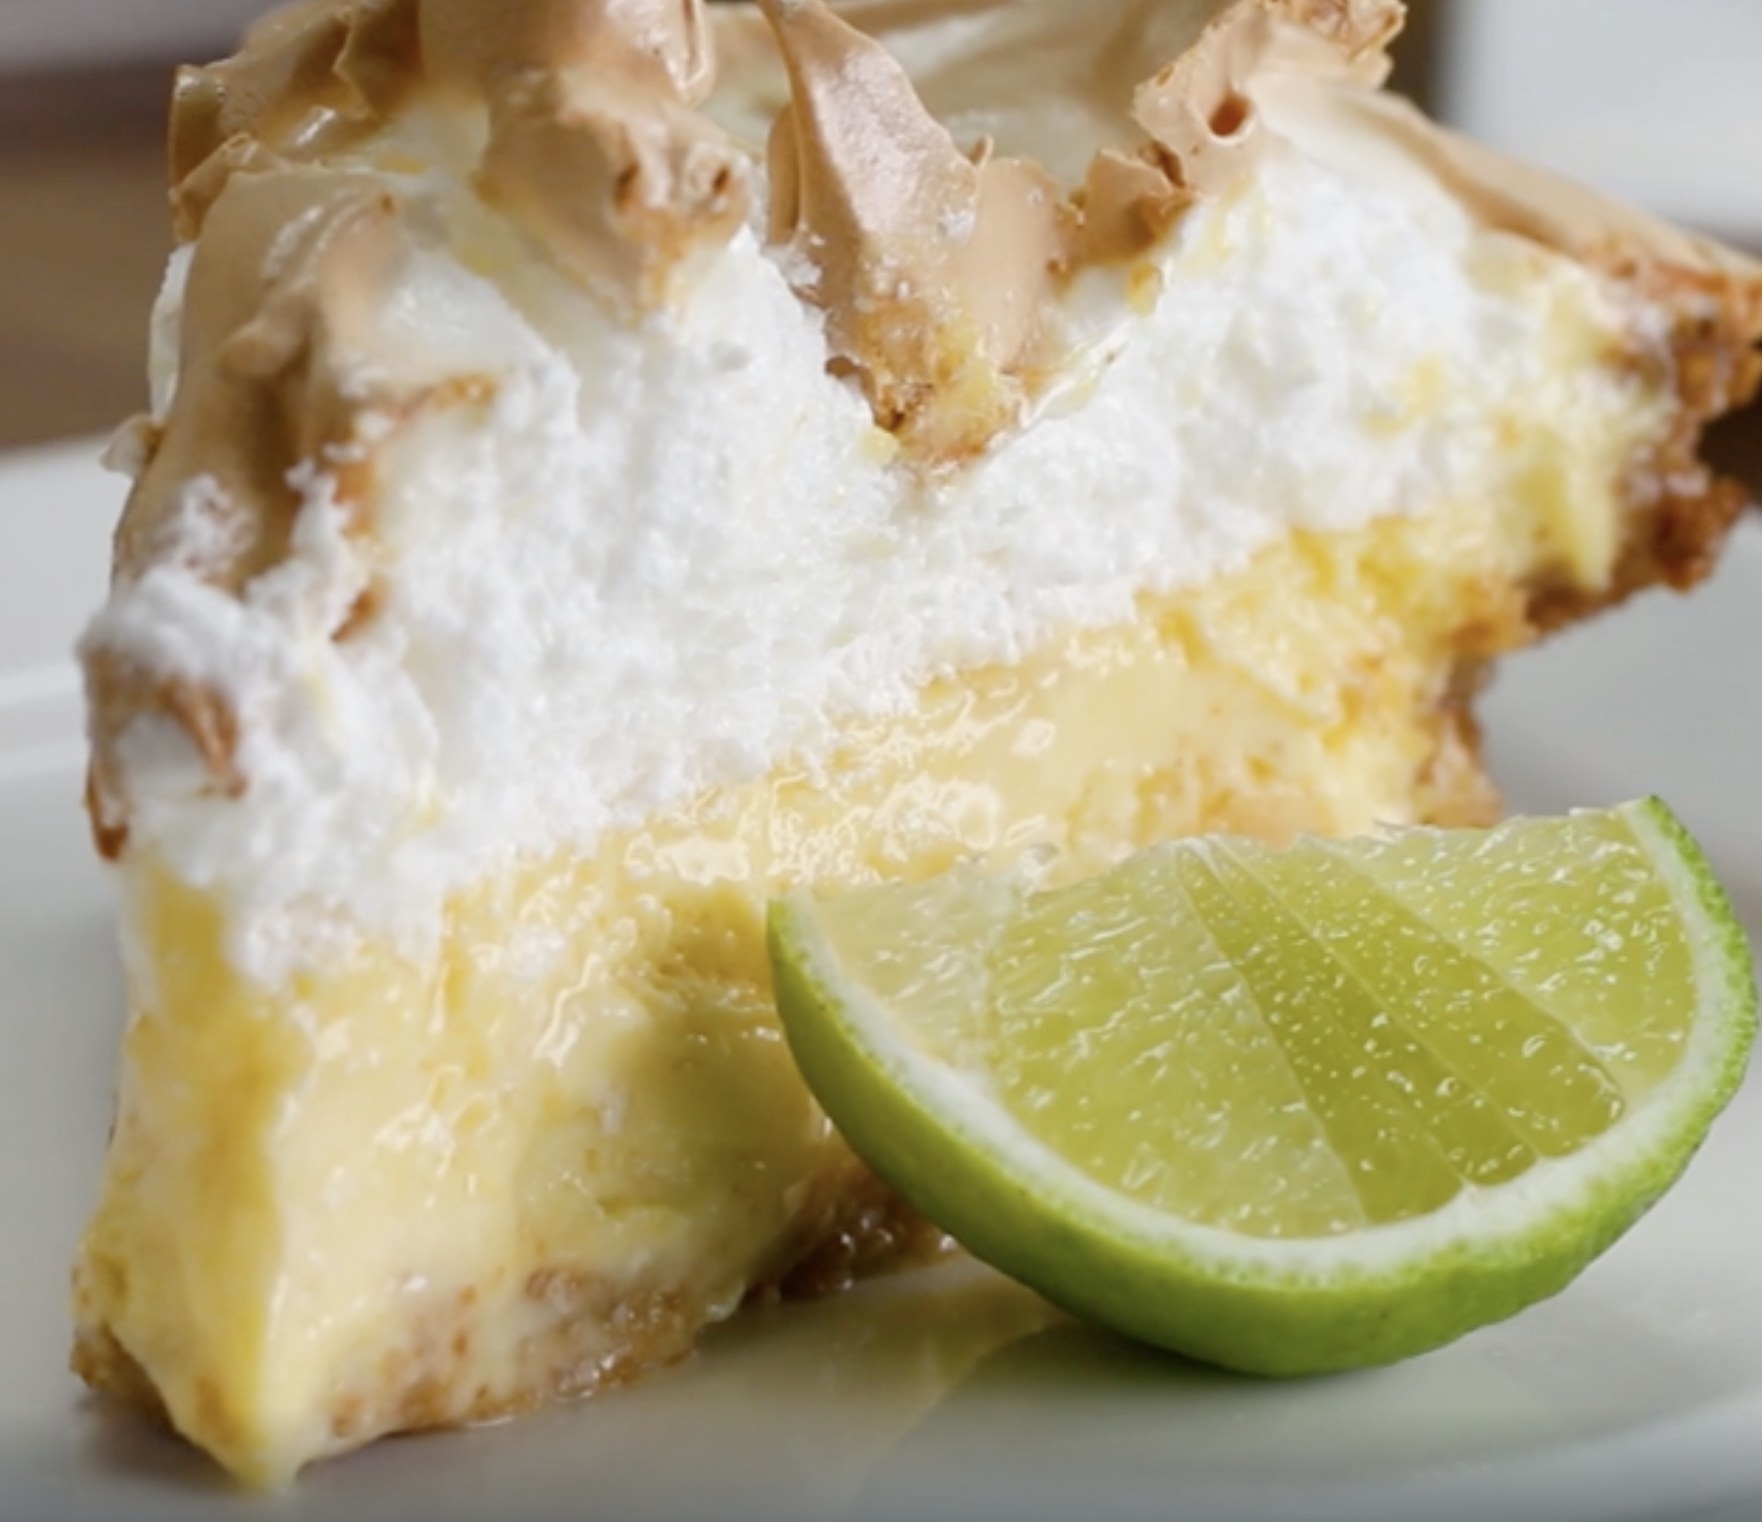 The key lime pie with the marshmallow meringue on top